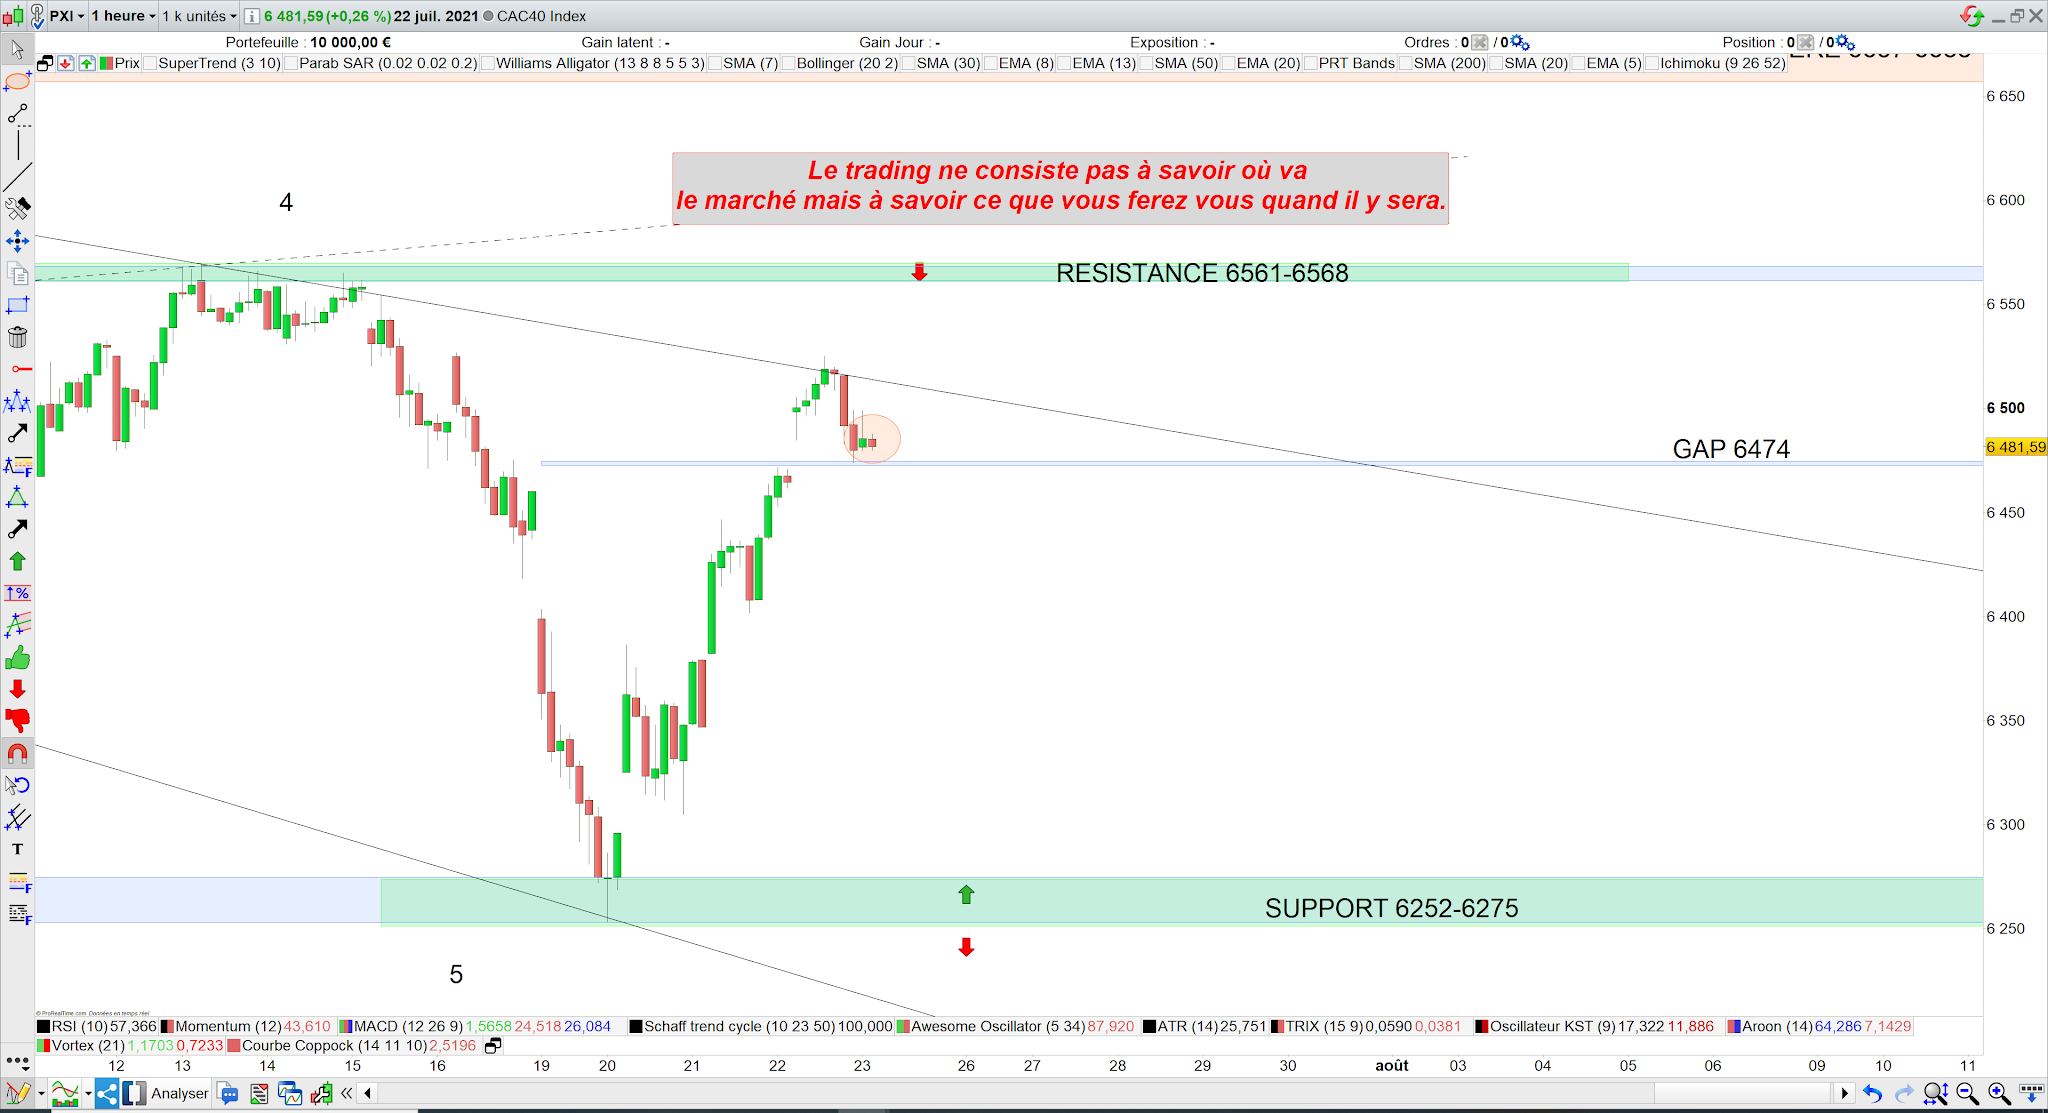 Trading cac40 23/07/21